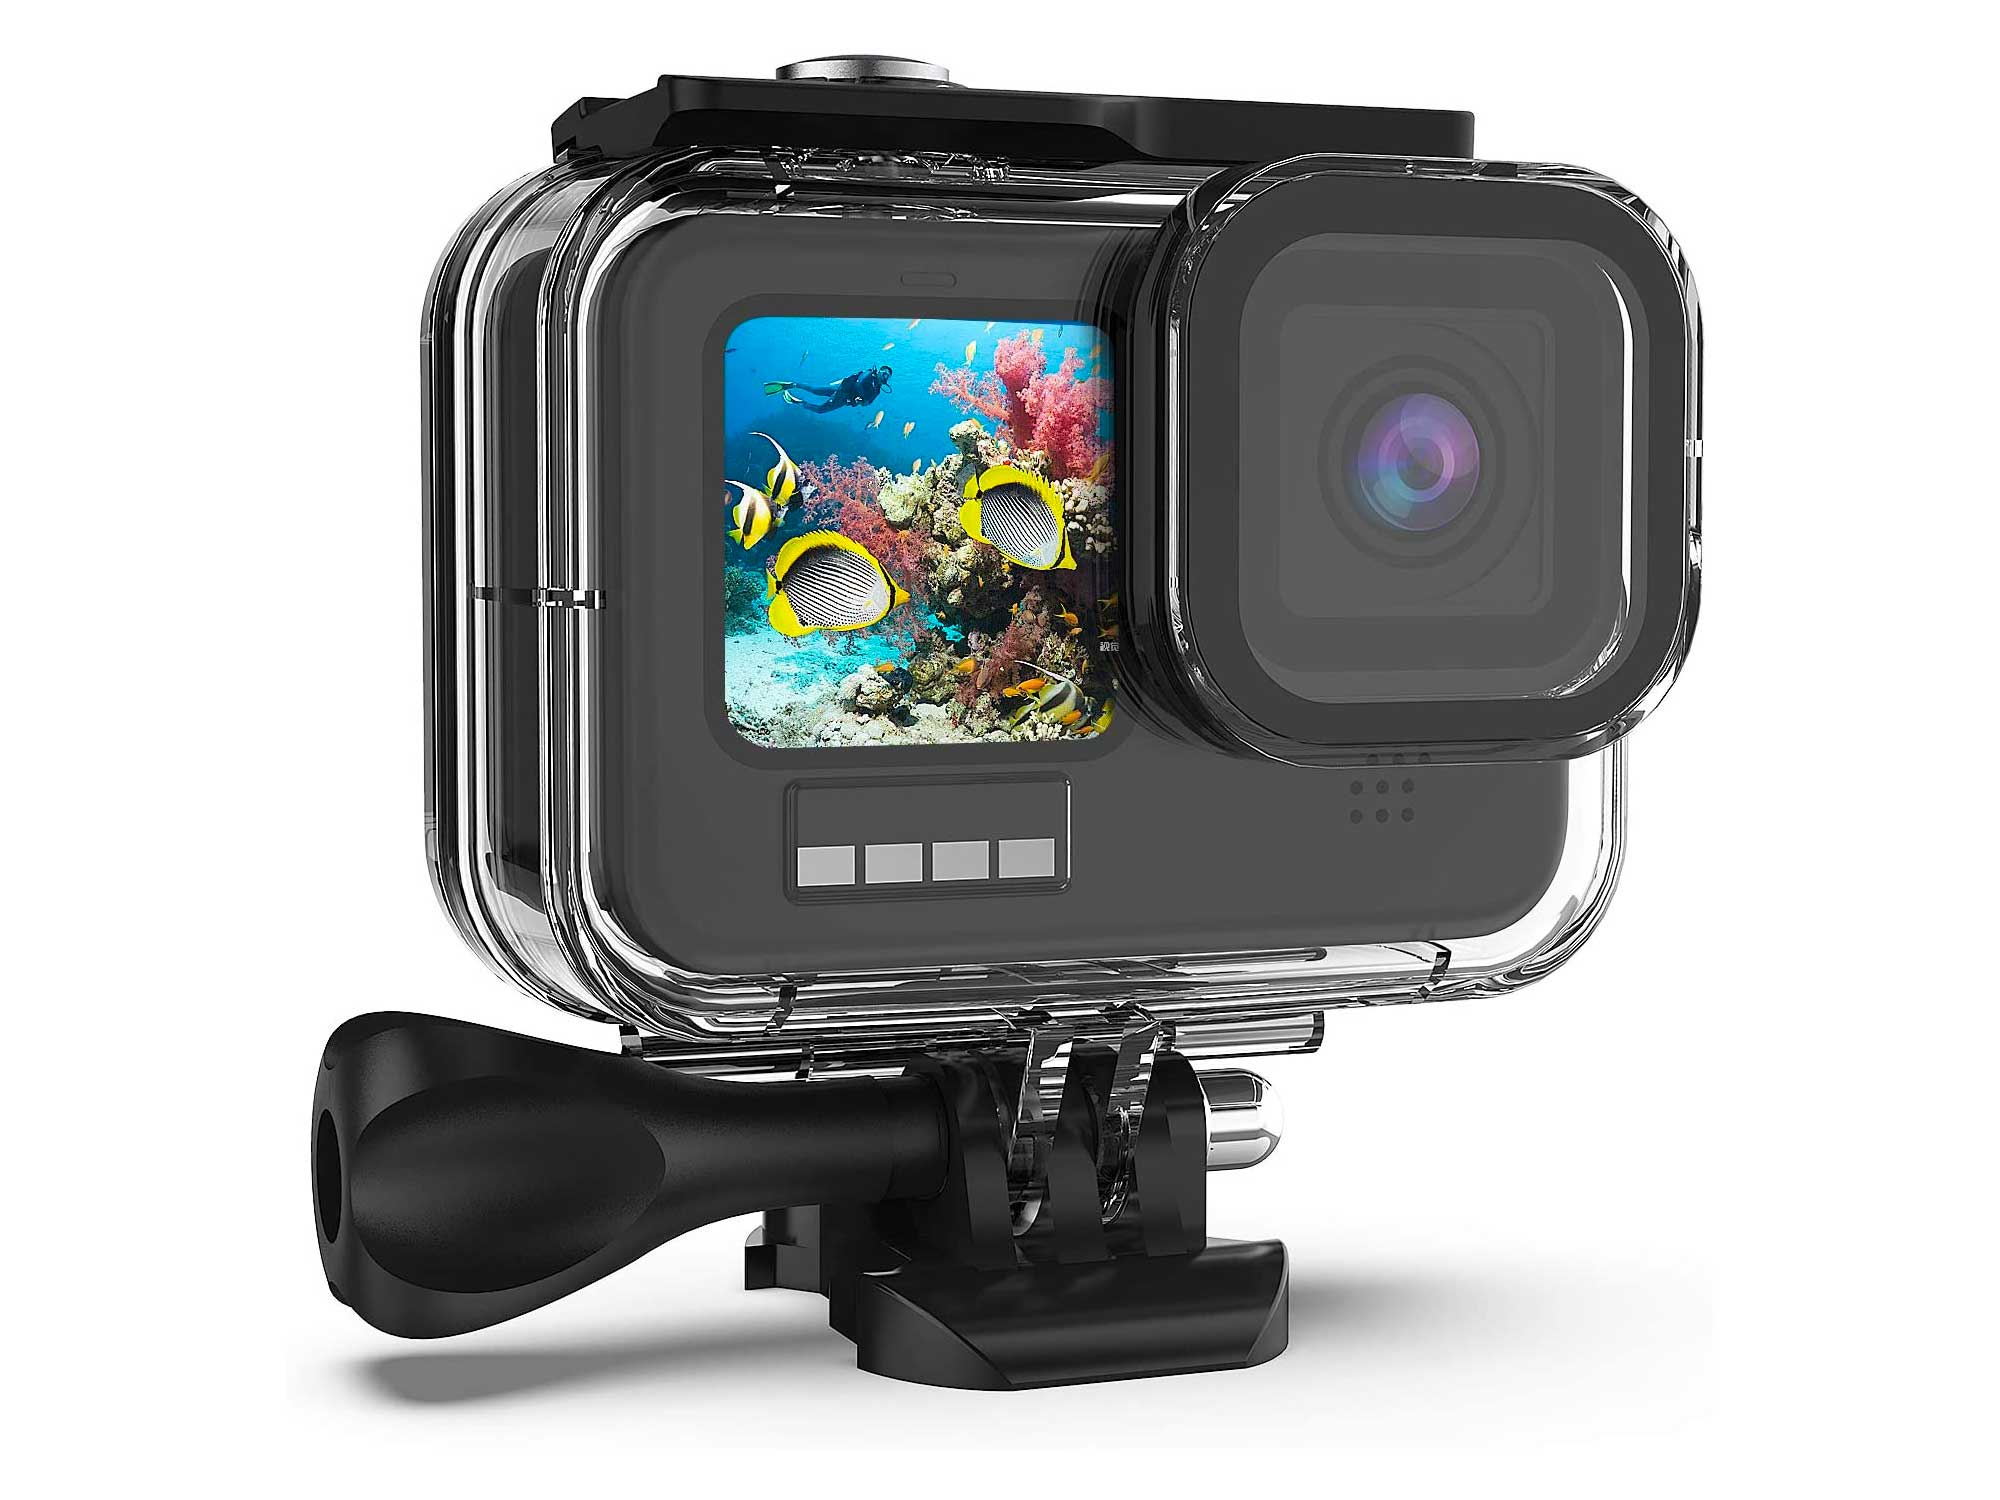 Kupton Waterproof Housing Case Compatible with GoPro HERO9 Black, 60M/196FT Underwater Protective Diving Case Shell with Bracket Mount Accessories Compatible with Hero 9 New Hero